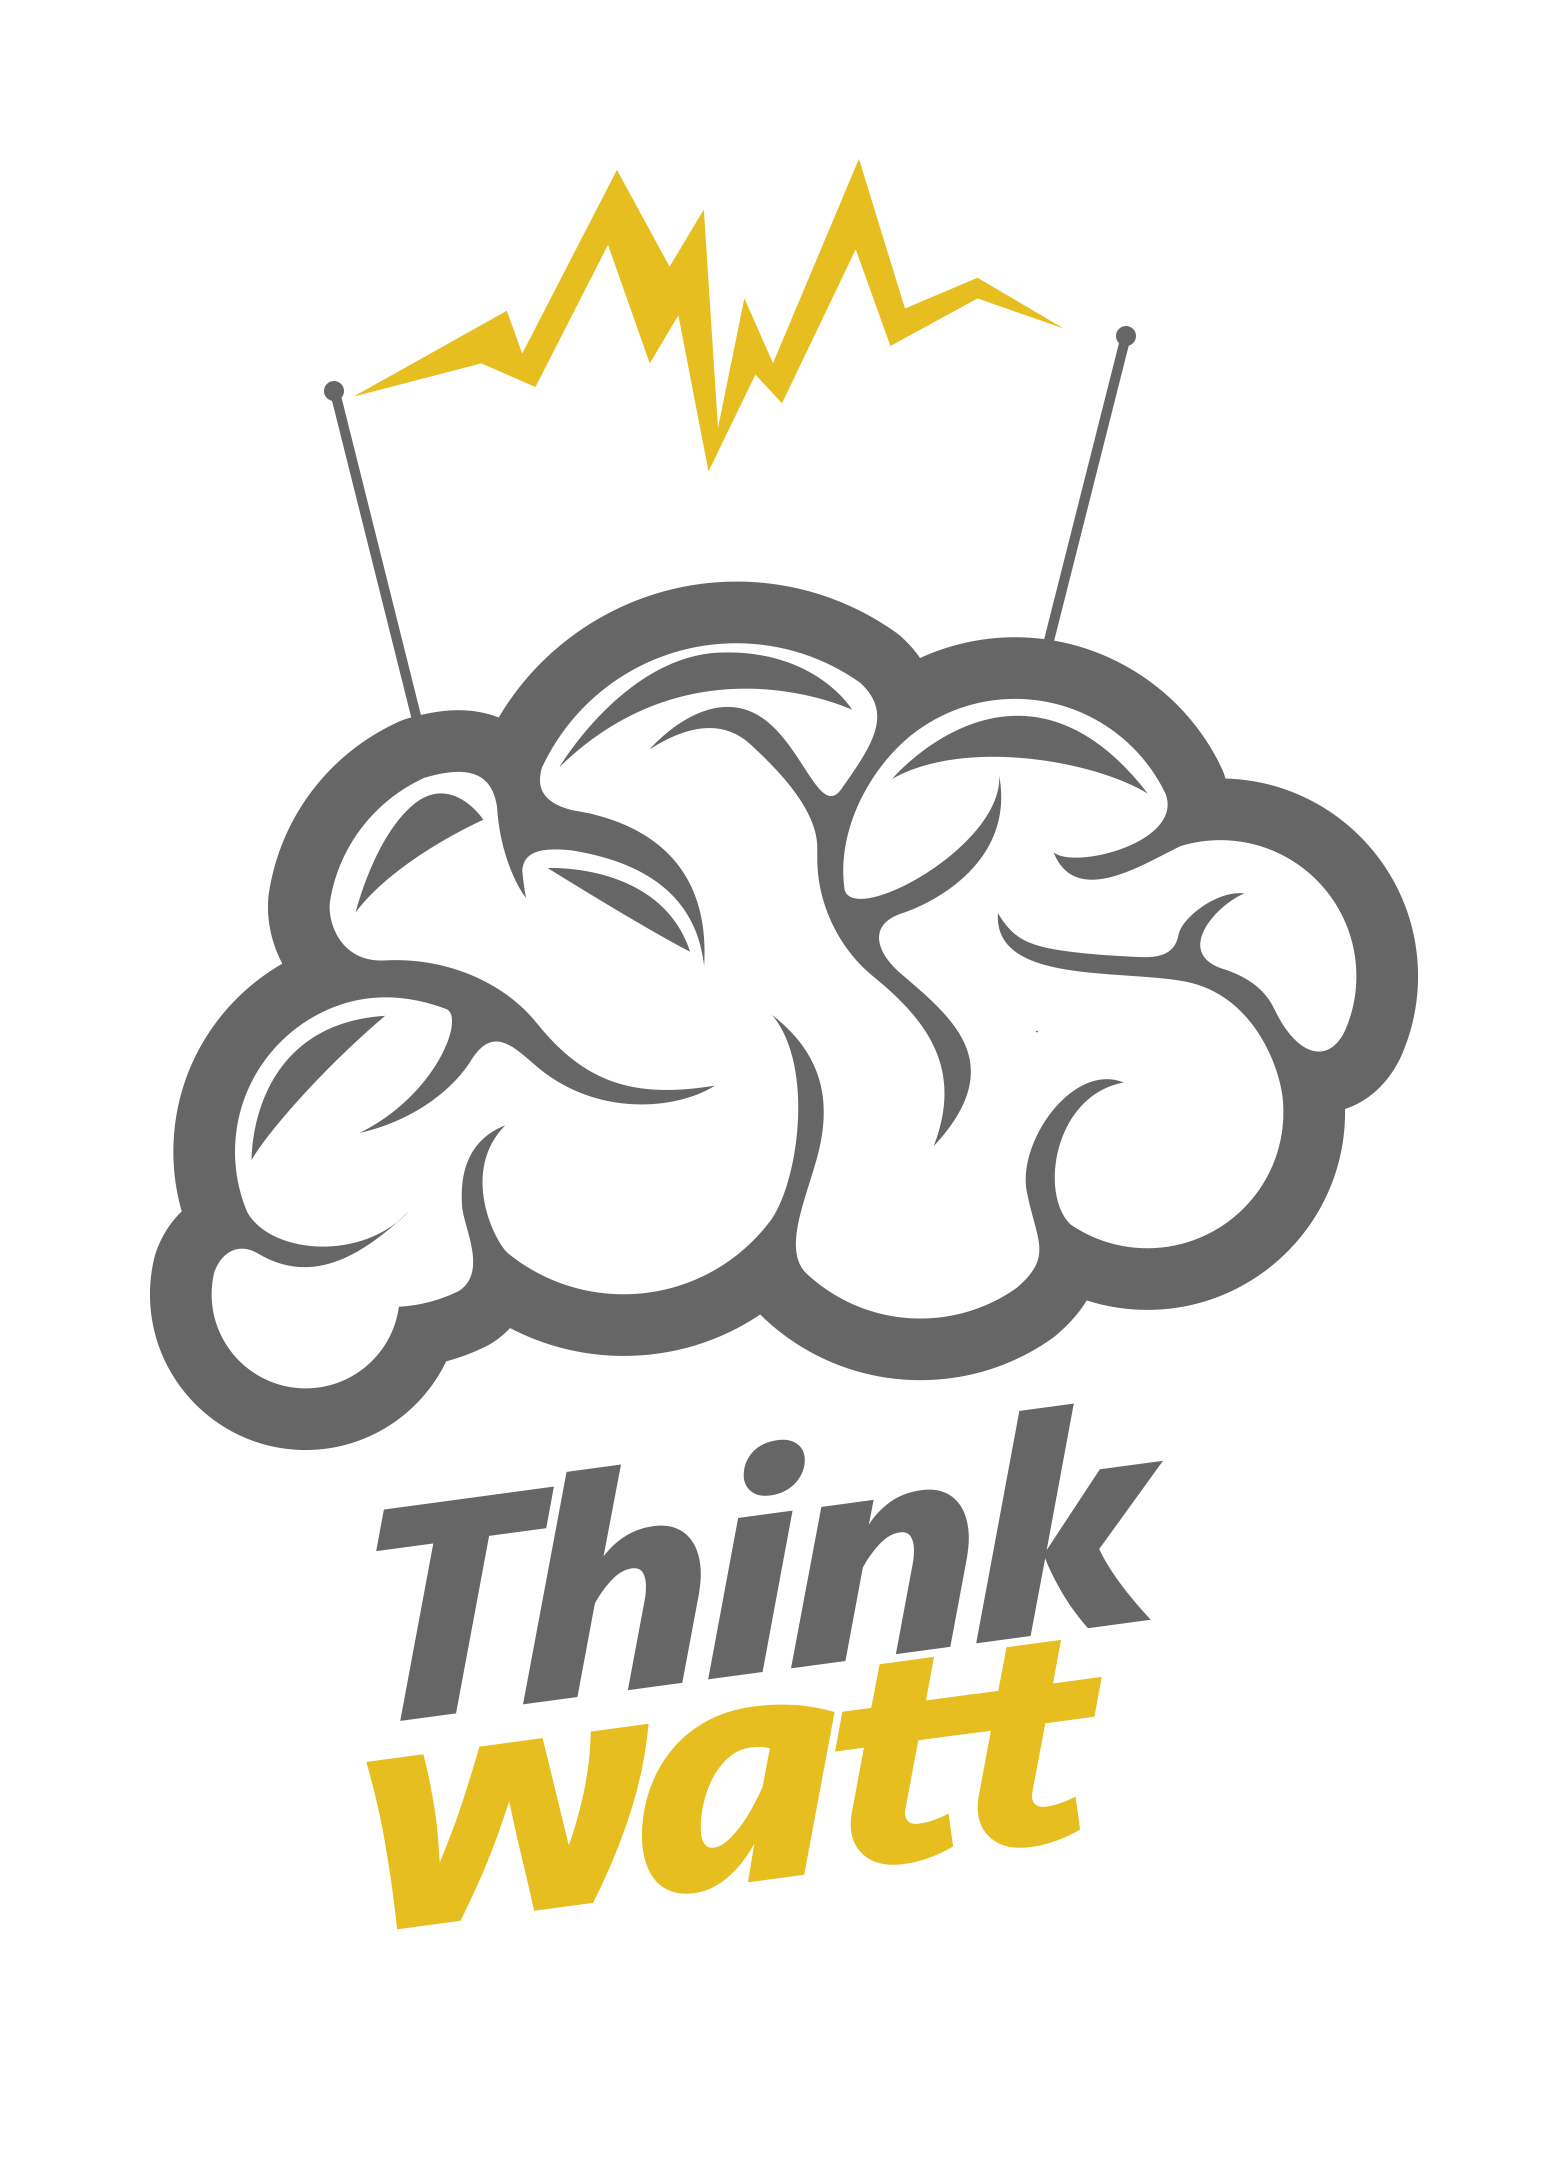 ThinkWatt – Watt up!